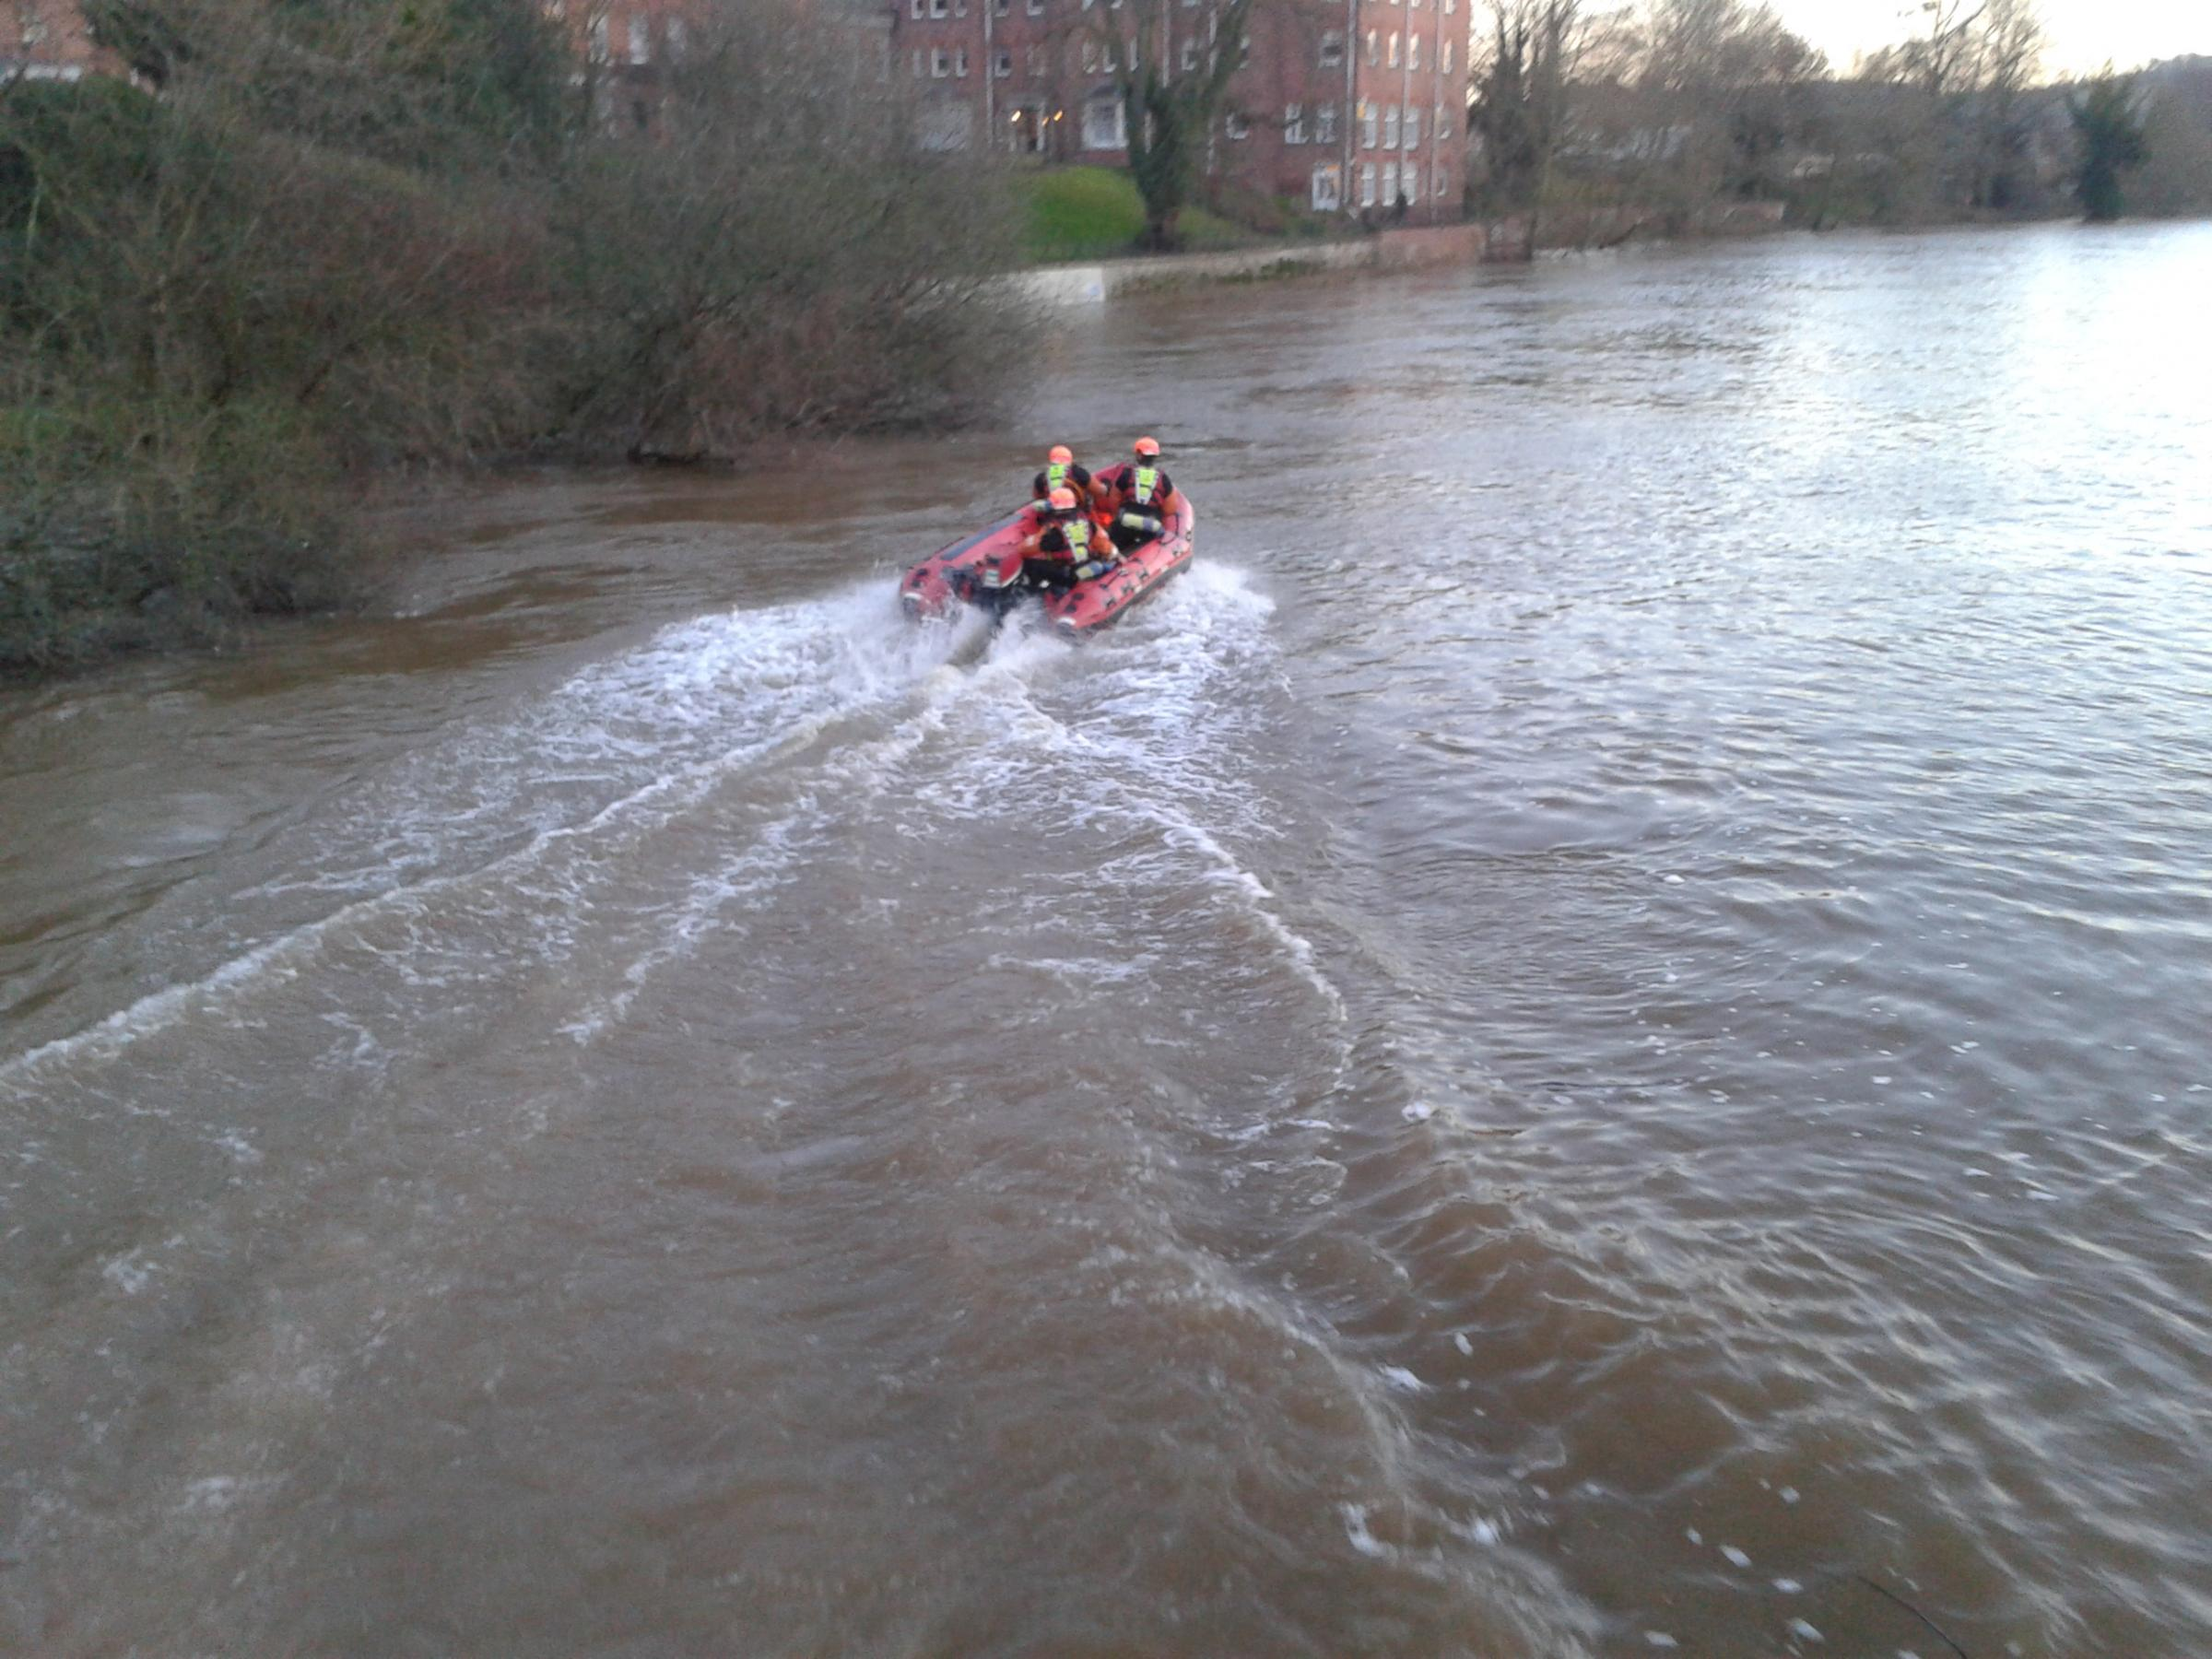 A water rescue boat pictured near the Victoria Bridge in Hereford.